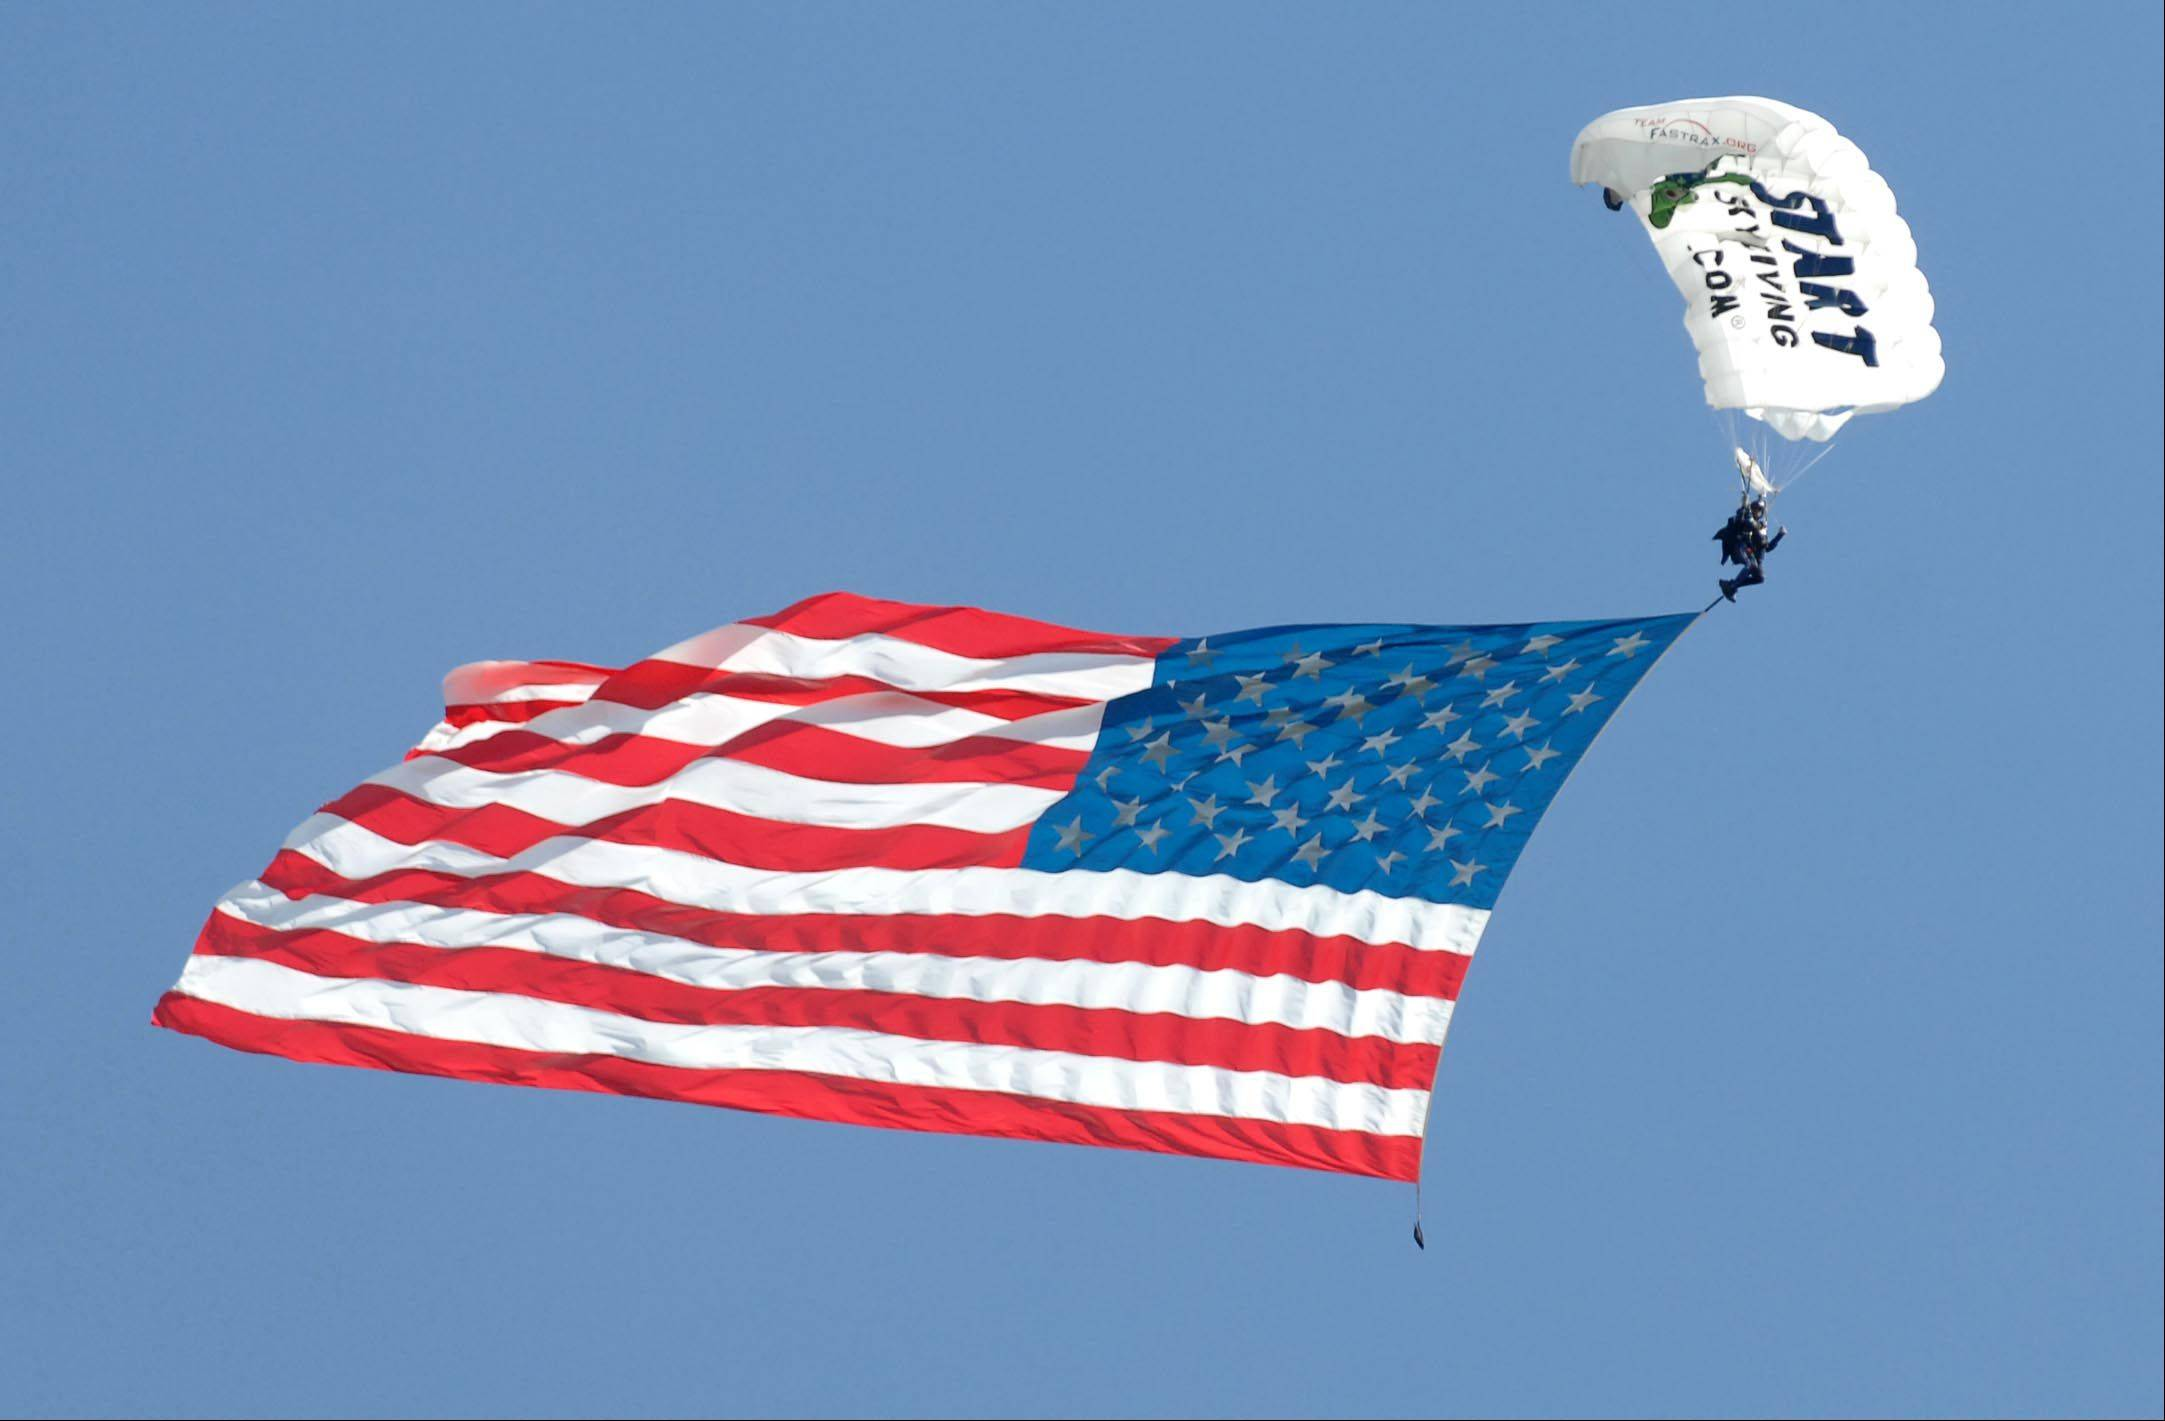 A member of Team Fastrax Professional Skydiving Team brings a large flag down to The Highlands Golf Club Thursday as part of a home giveaway to Nick Mapson, 28, of Sugar Grove and his wife Jackie and son Jaden. Nick is a wounded veteran and was awarded the house by The Home Builders Association of Greater Chicago and New American Homes Inc., among the many groups that helped with the project.